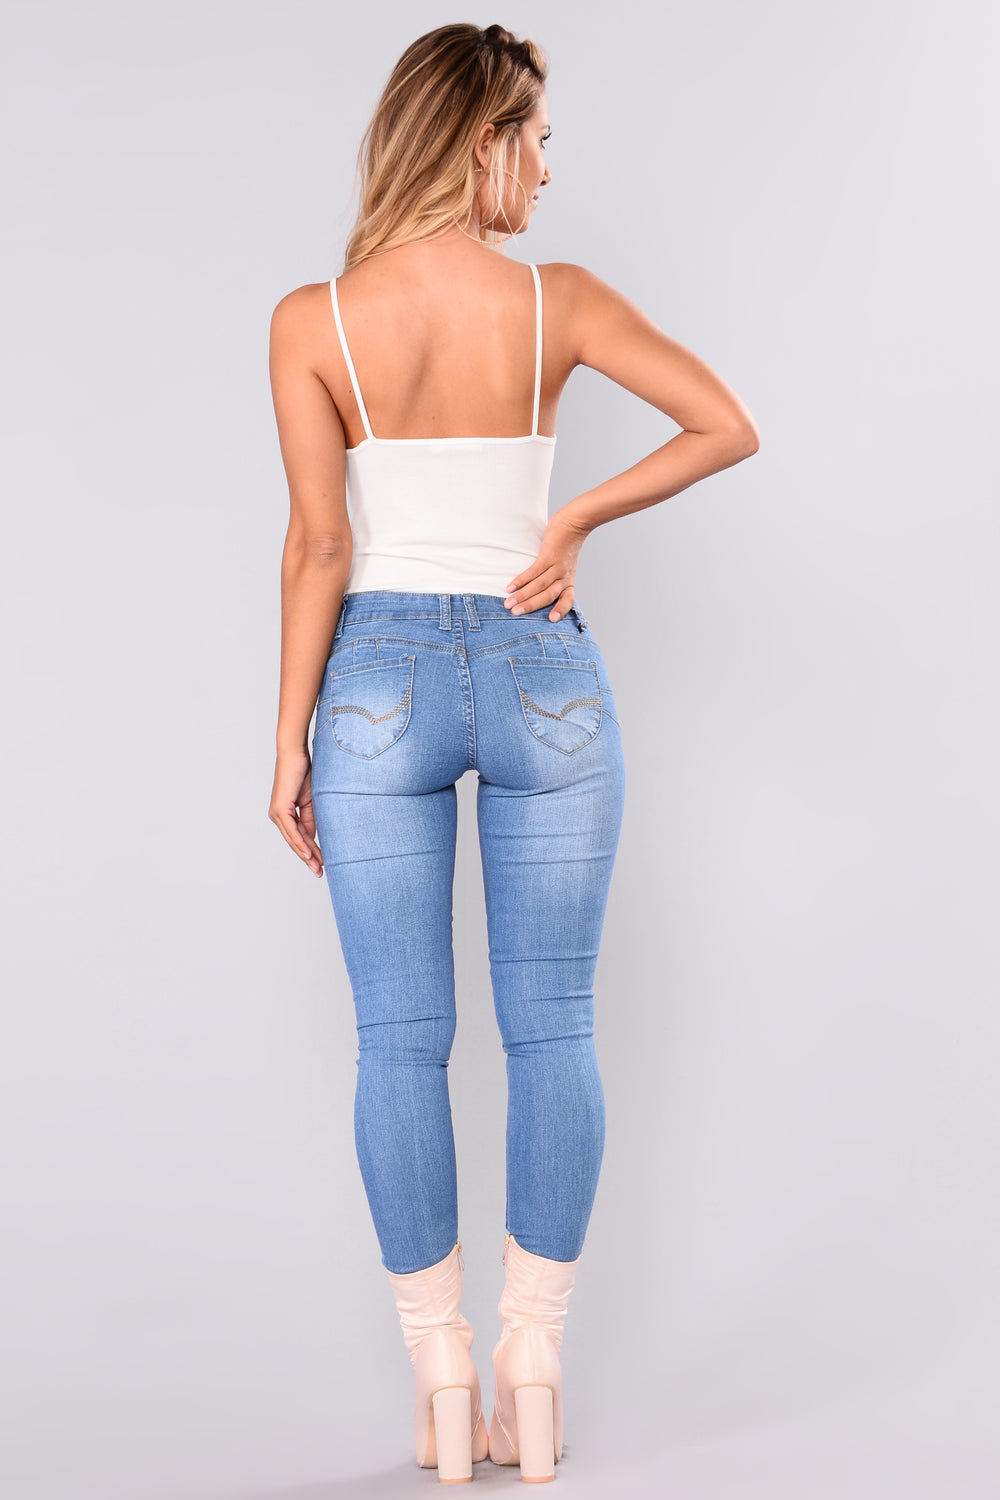 Like What Booty Lifting Jeans - Light Blue Wash